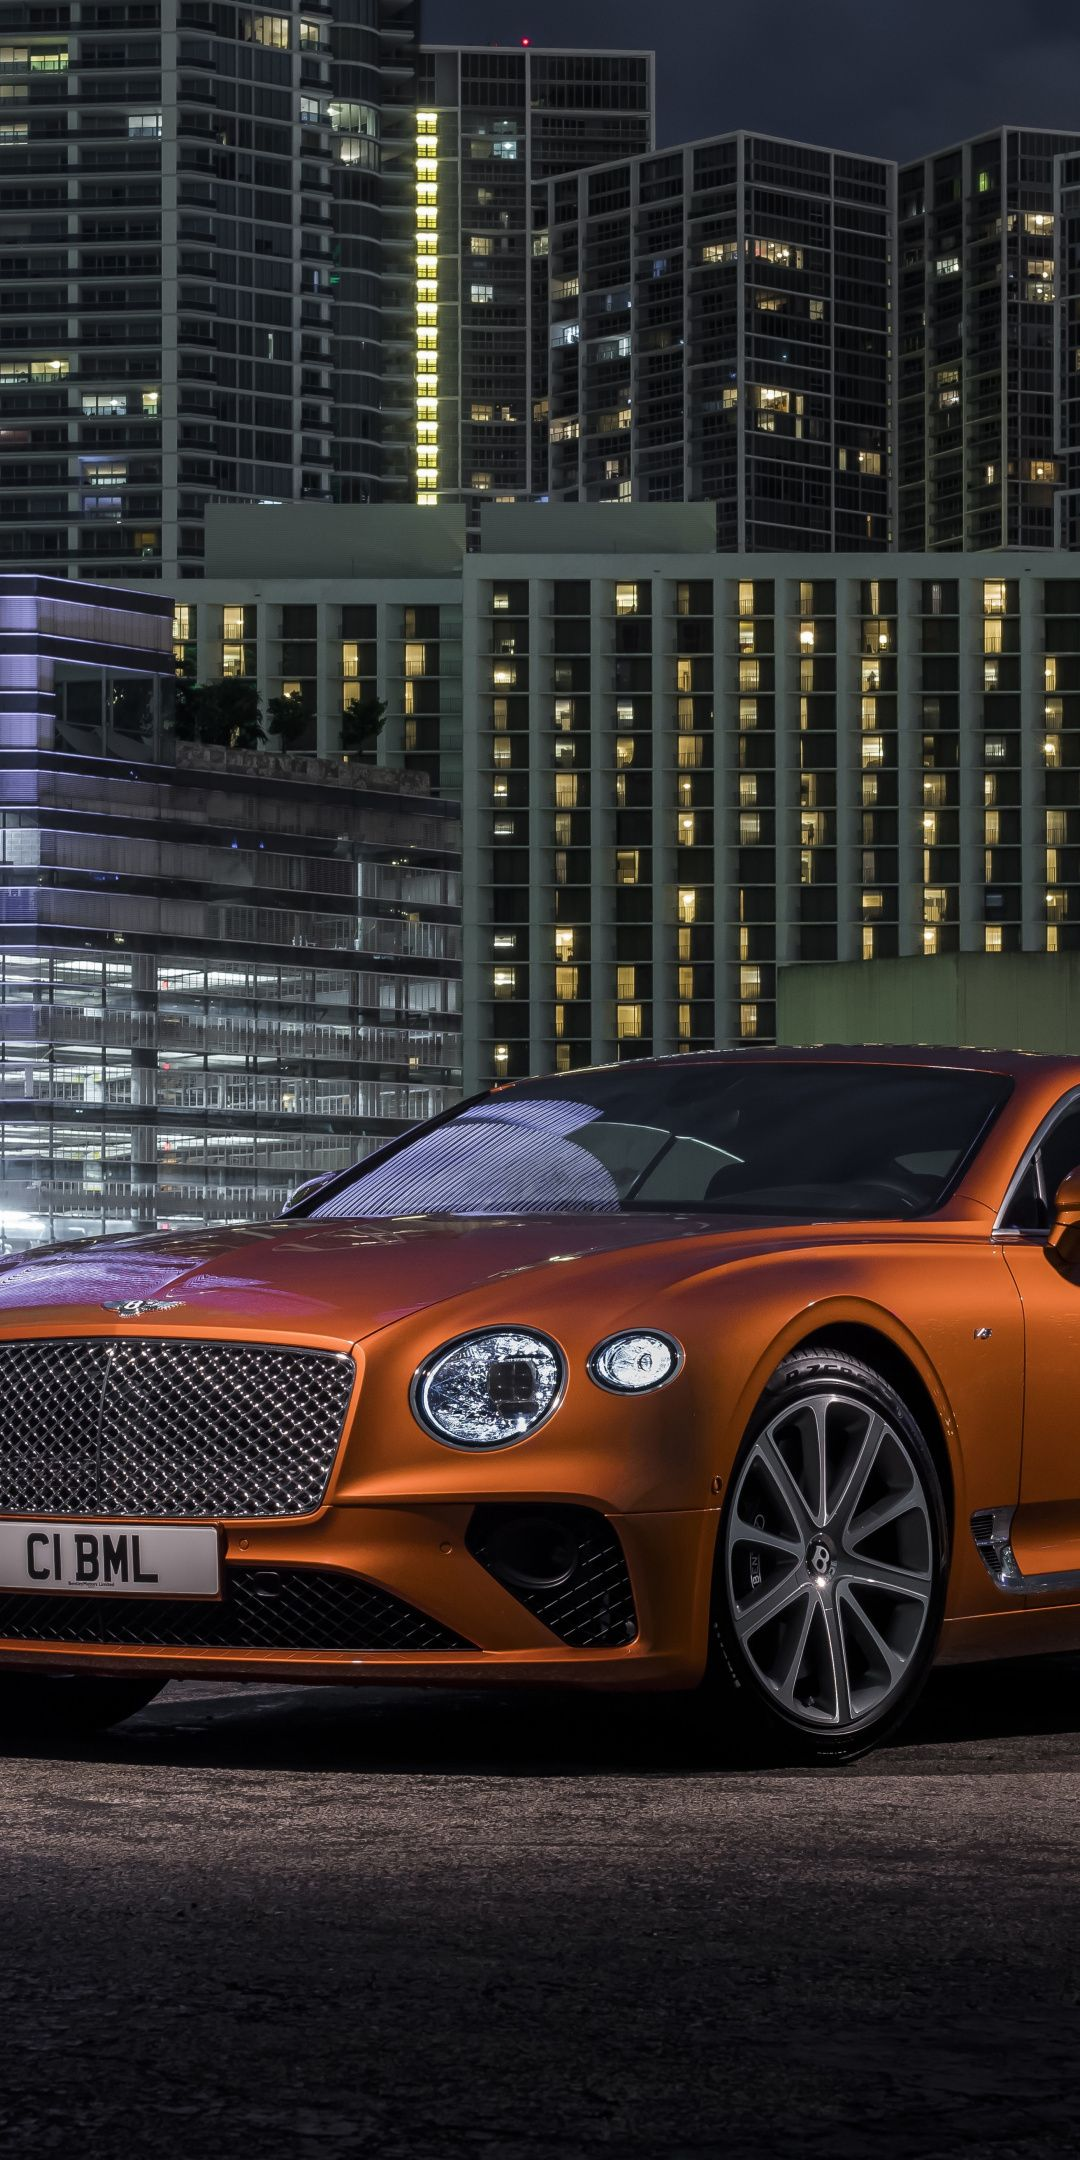 Off Road Bentley Continental Gt Luxurious Car 1080x2160 Wallpaper Bentley Continental Gt Bentley Car Bentley Continental